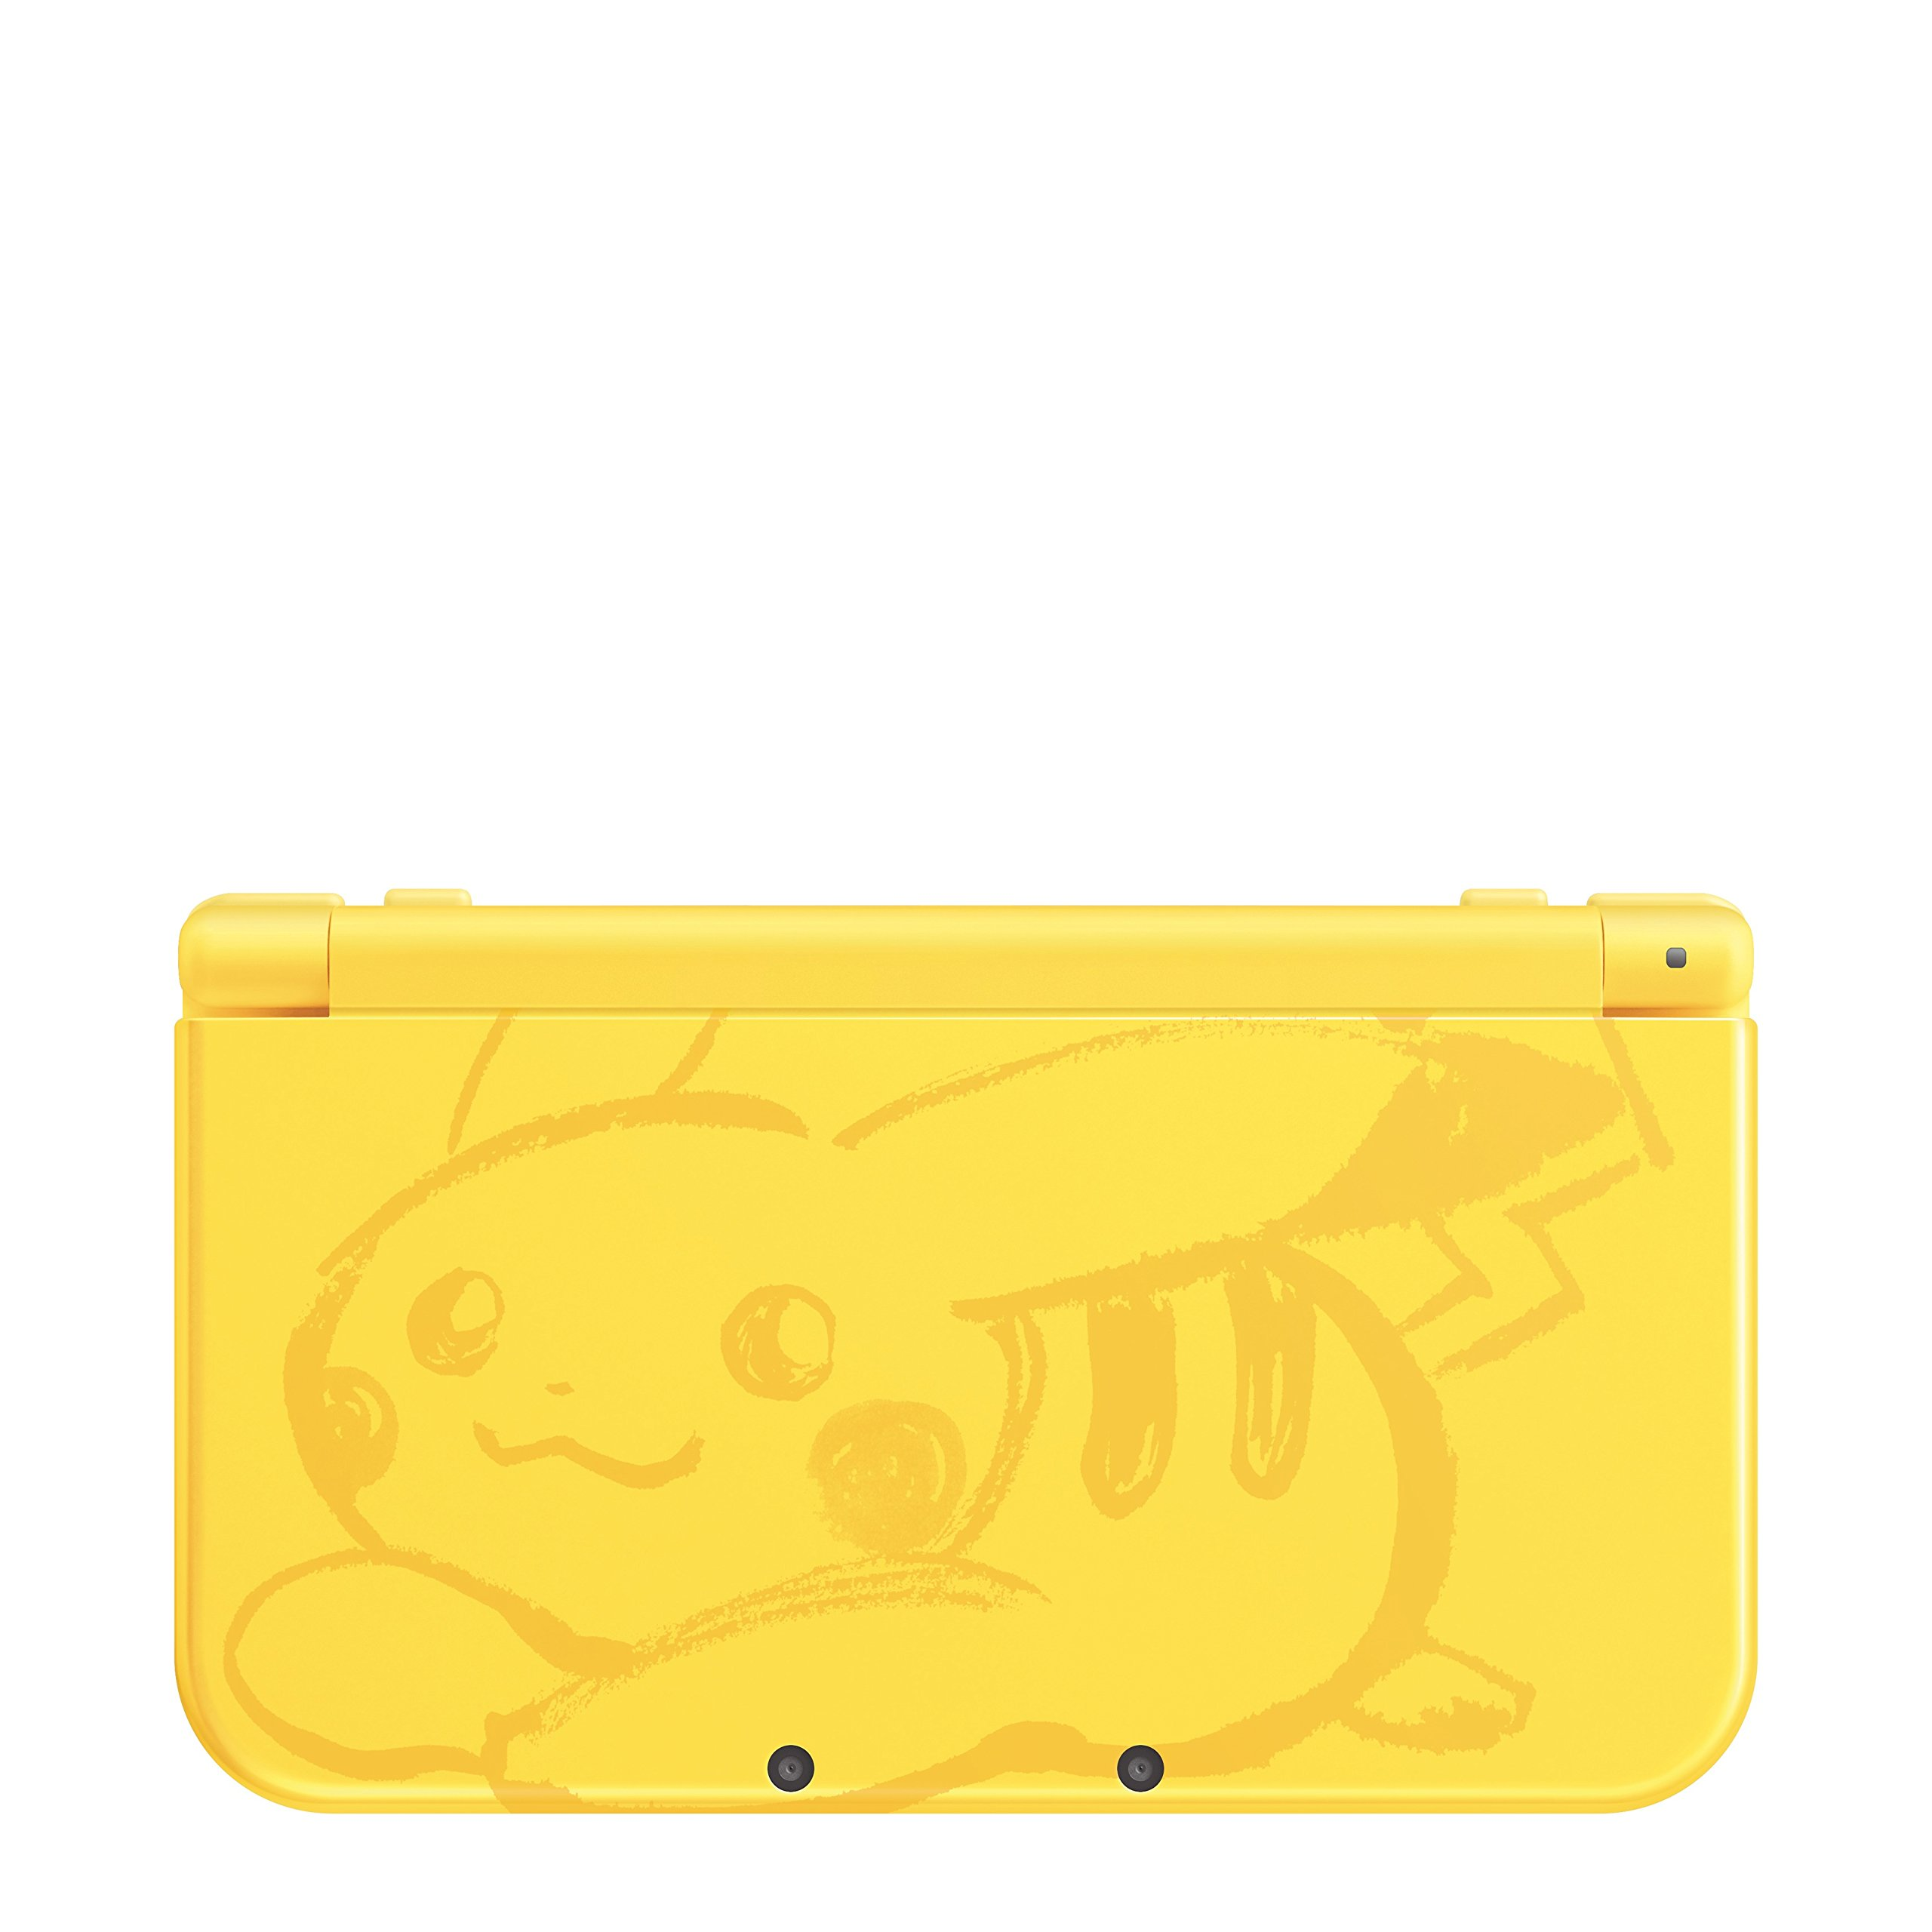 Nintendo New 3DS XL - Pikachu Yellow Edition [Discontinued] by Nintendo (Image #5)